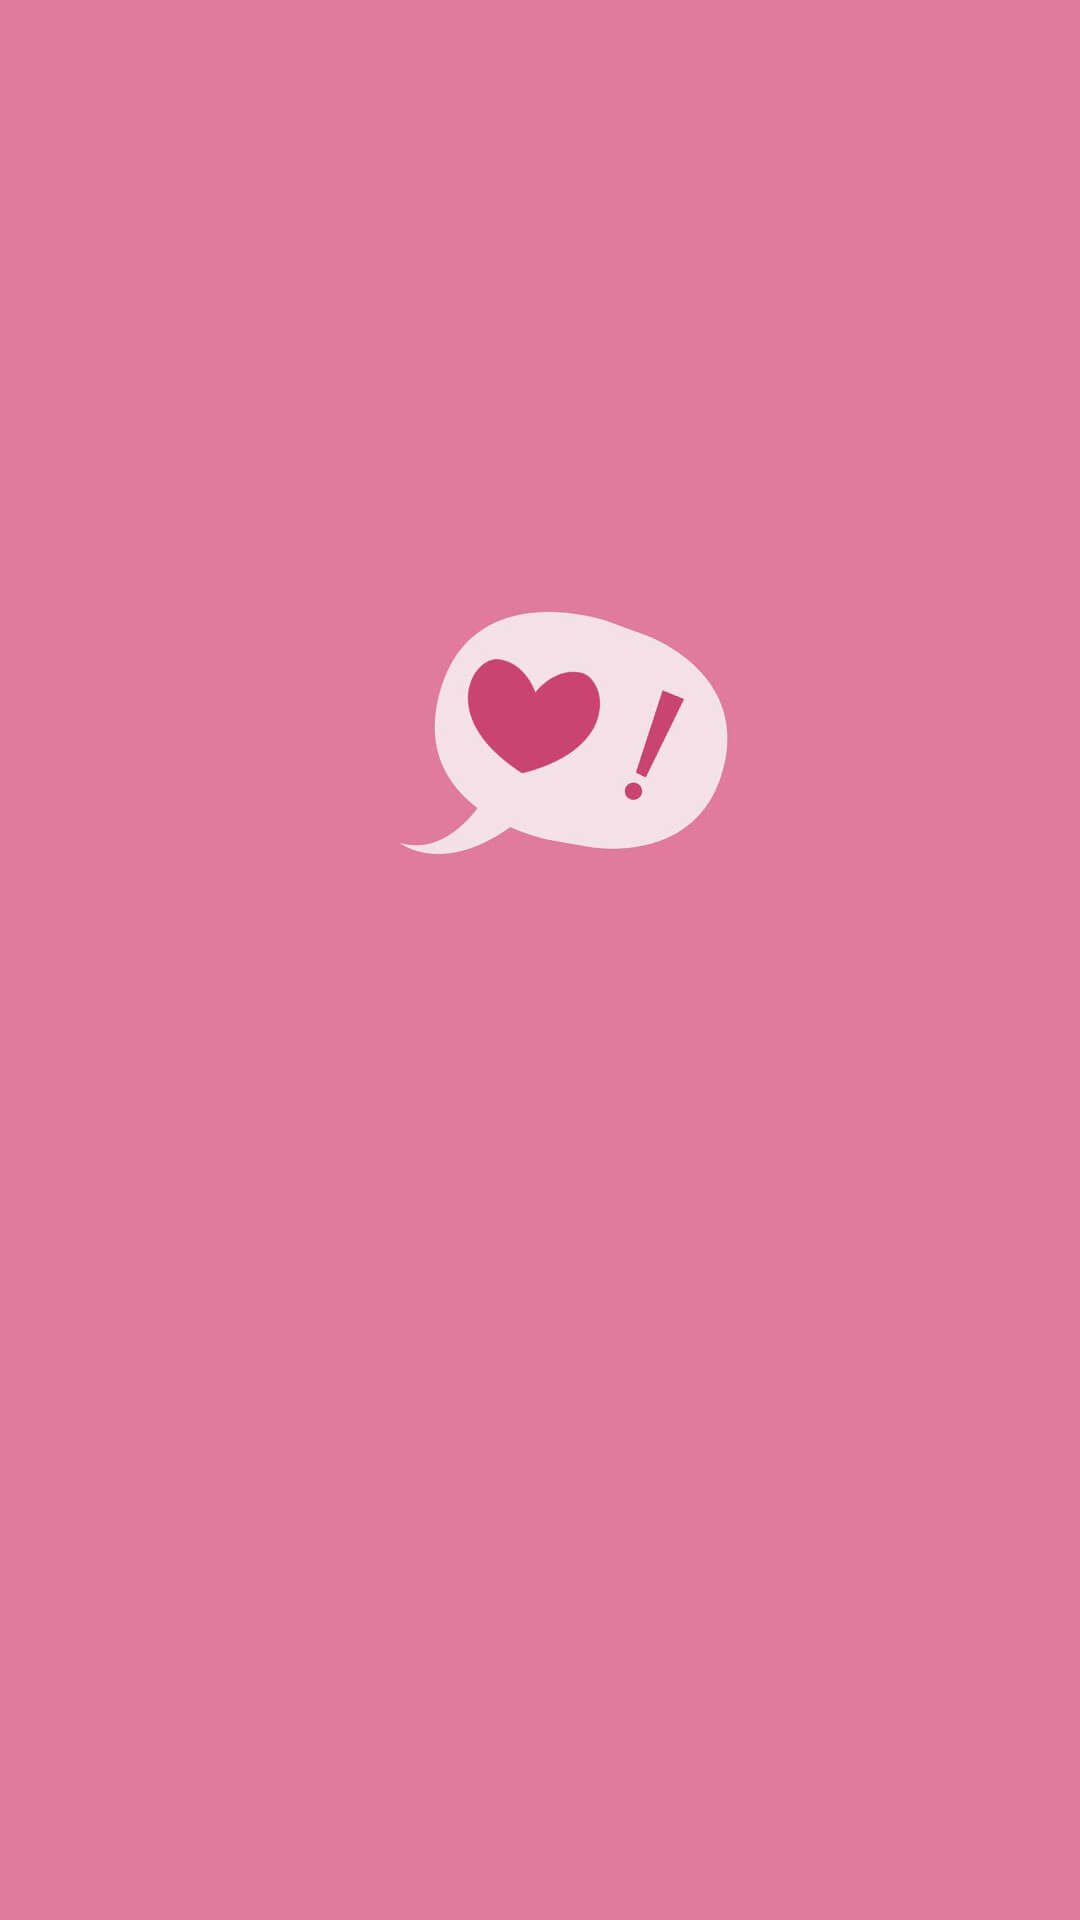 1246699 best cute pink wallpapers for iphone 1080x1920 large resolution